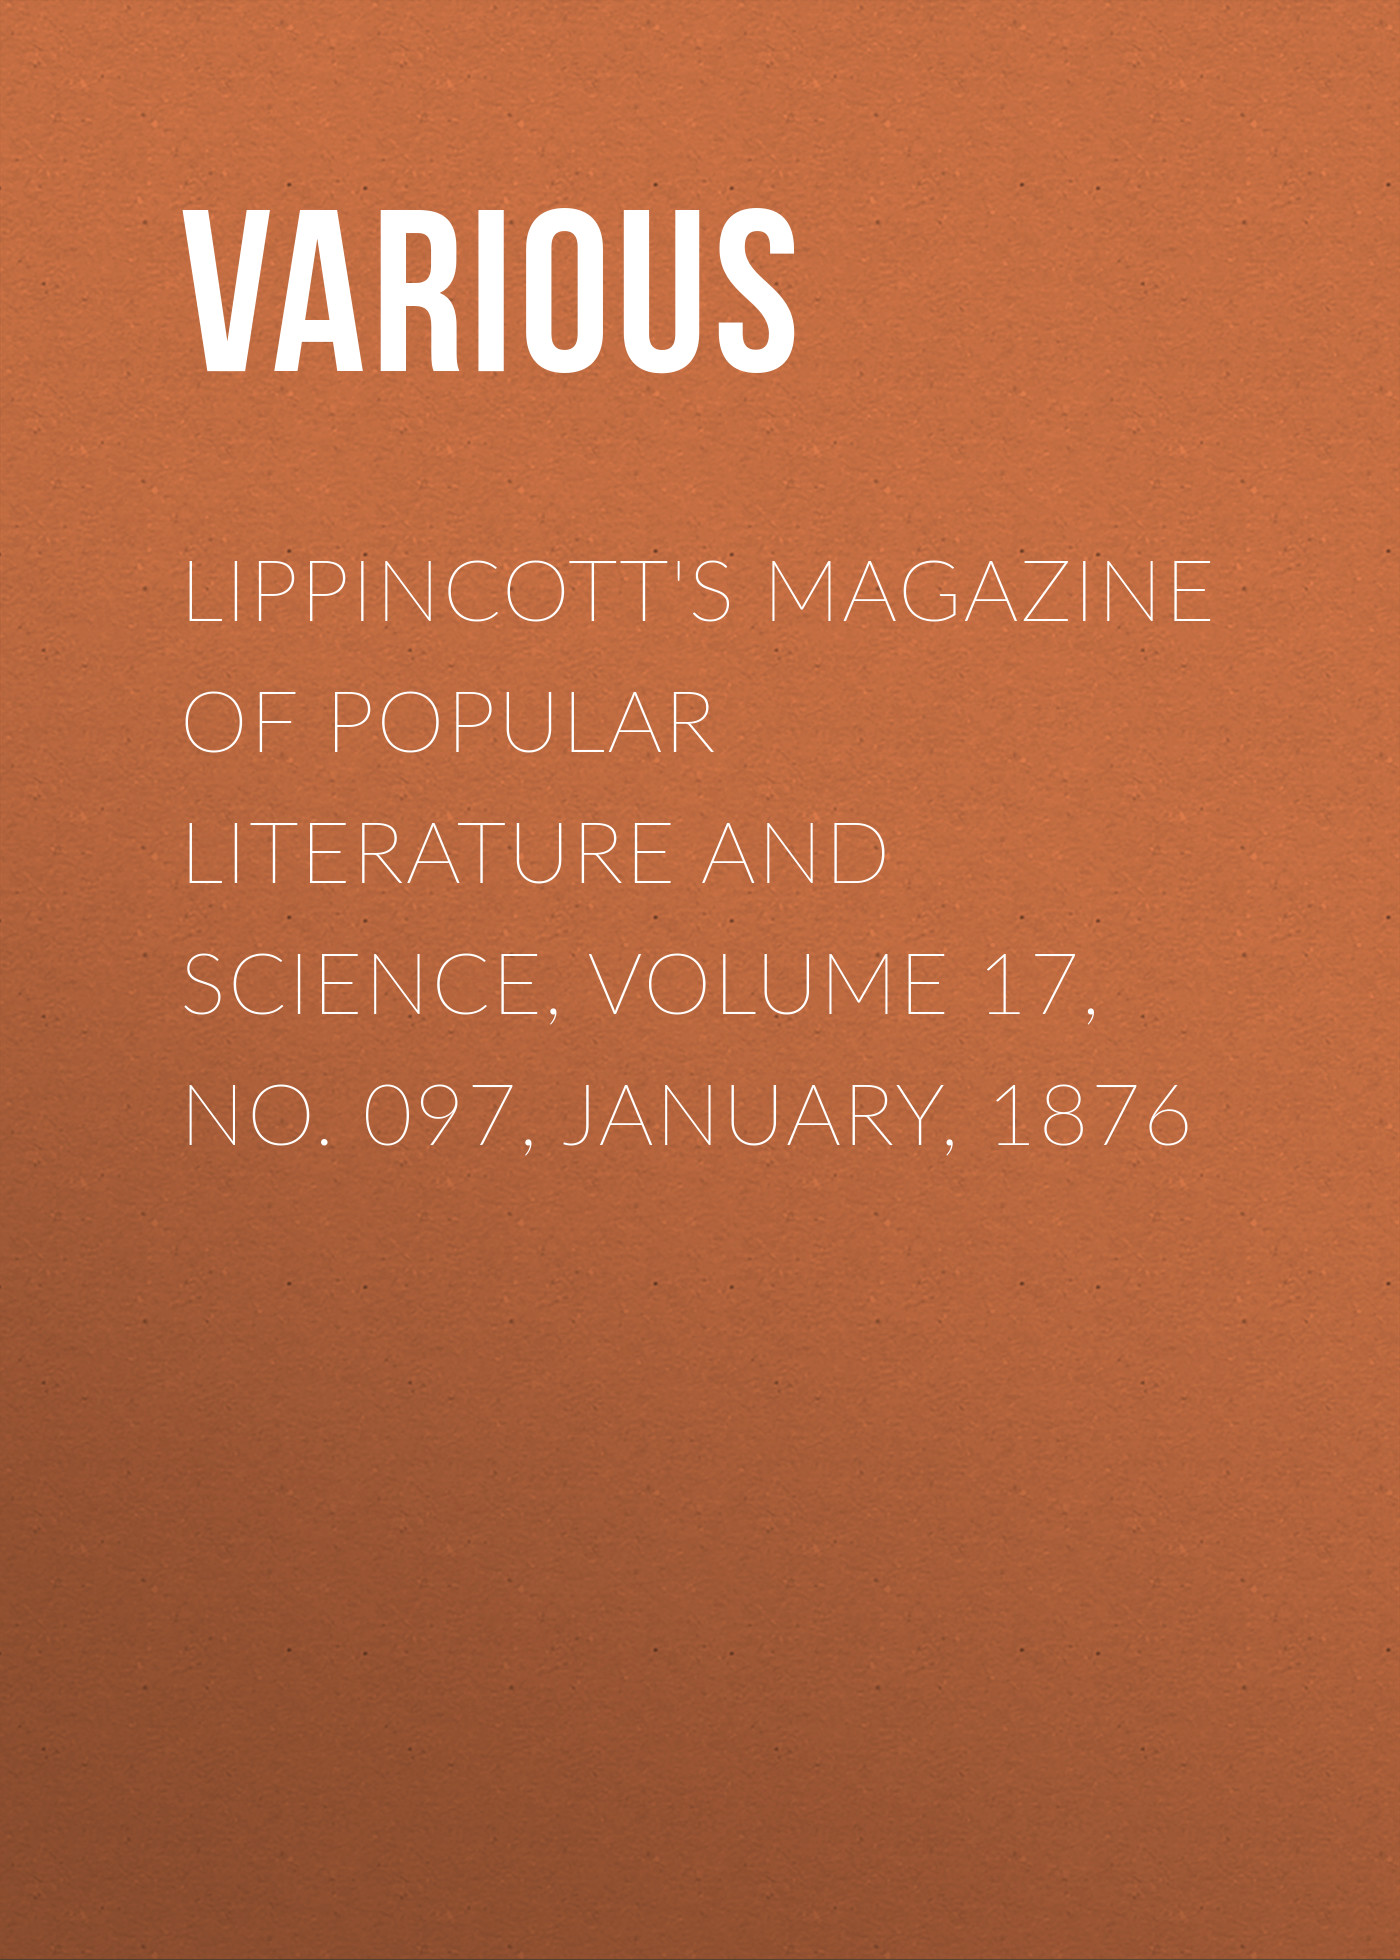 Various Lippincott's Magazine of Popular Literature and Science, Volume 17, No. 097, January, 1876